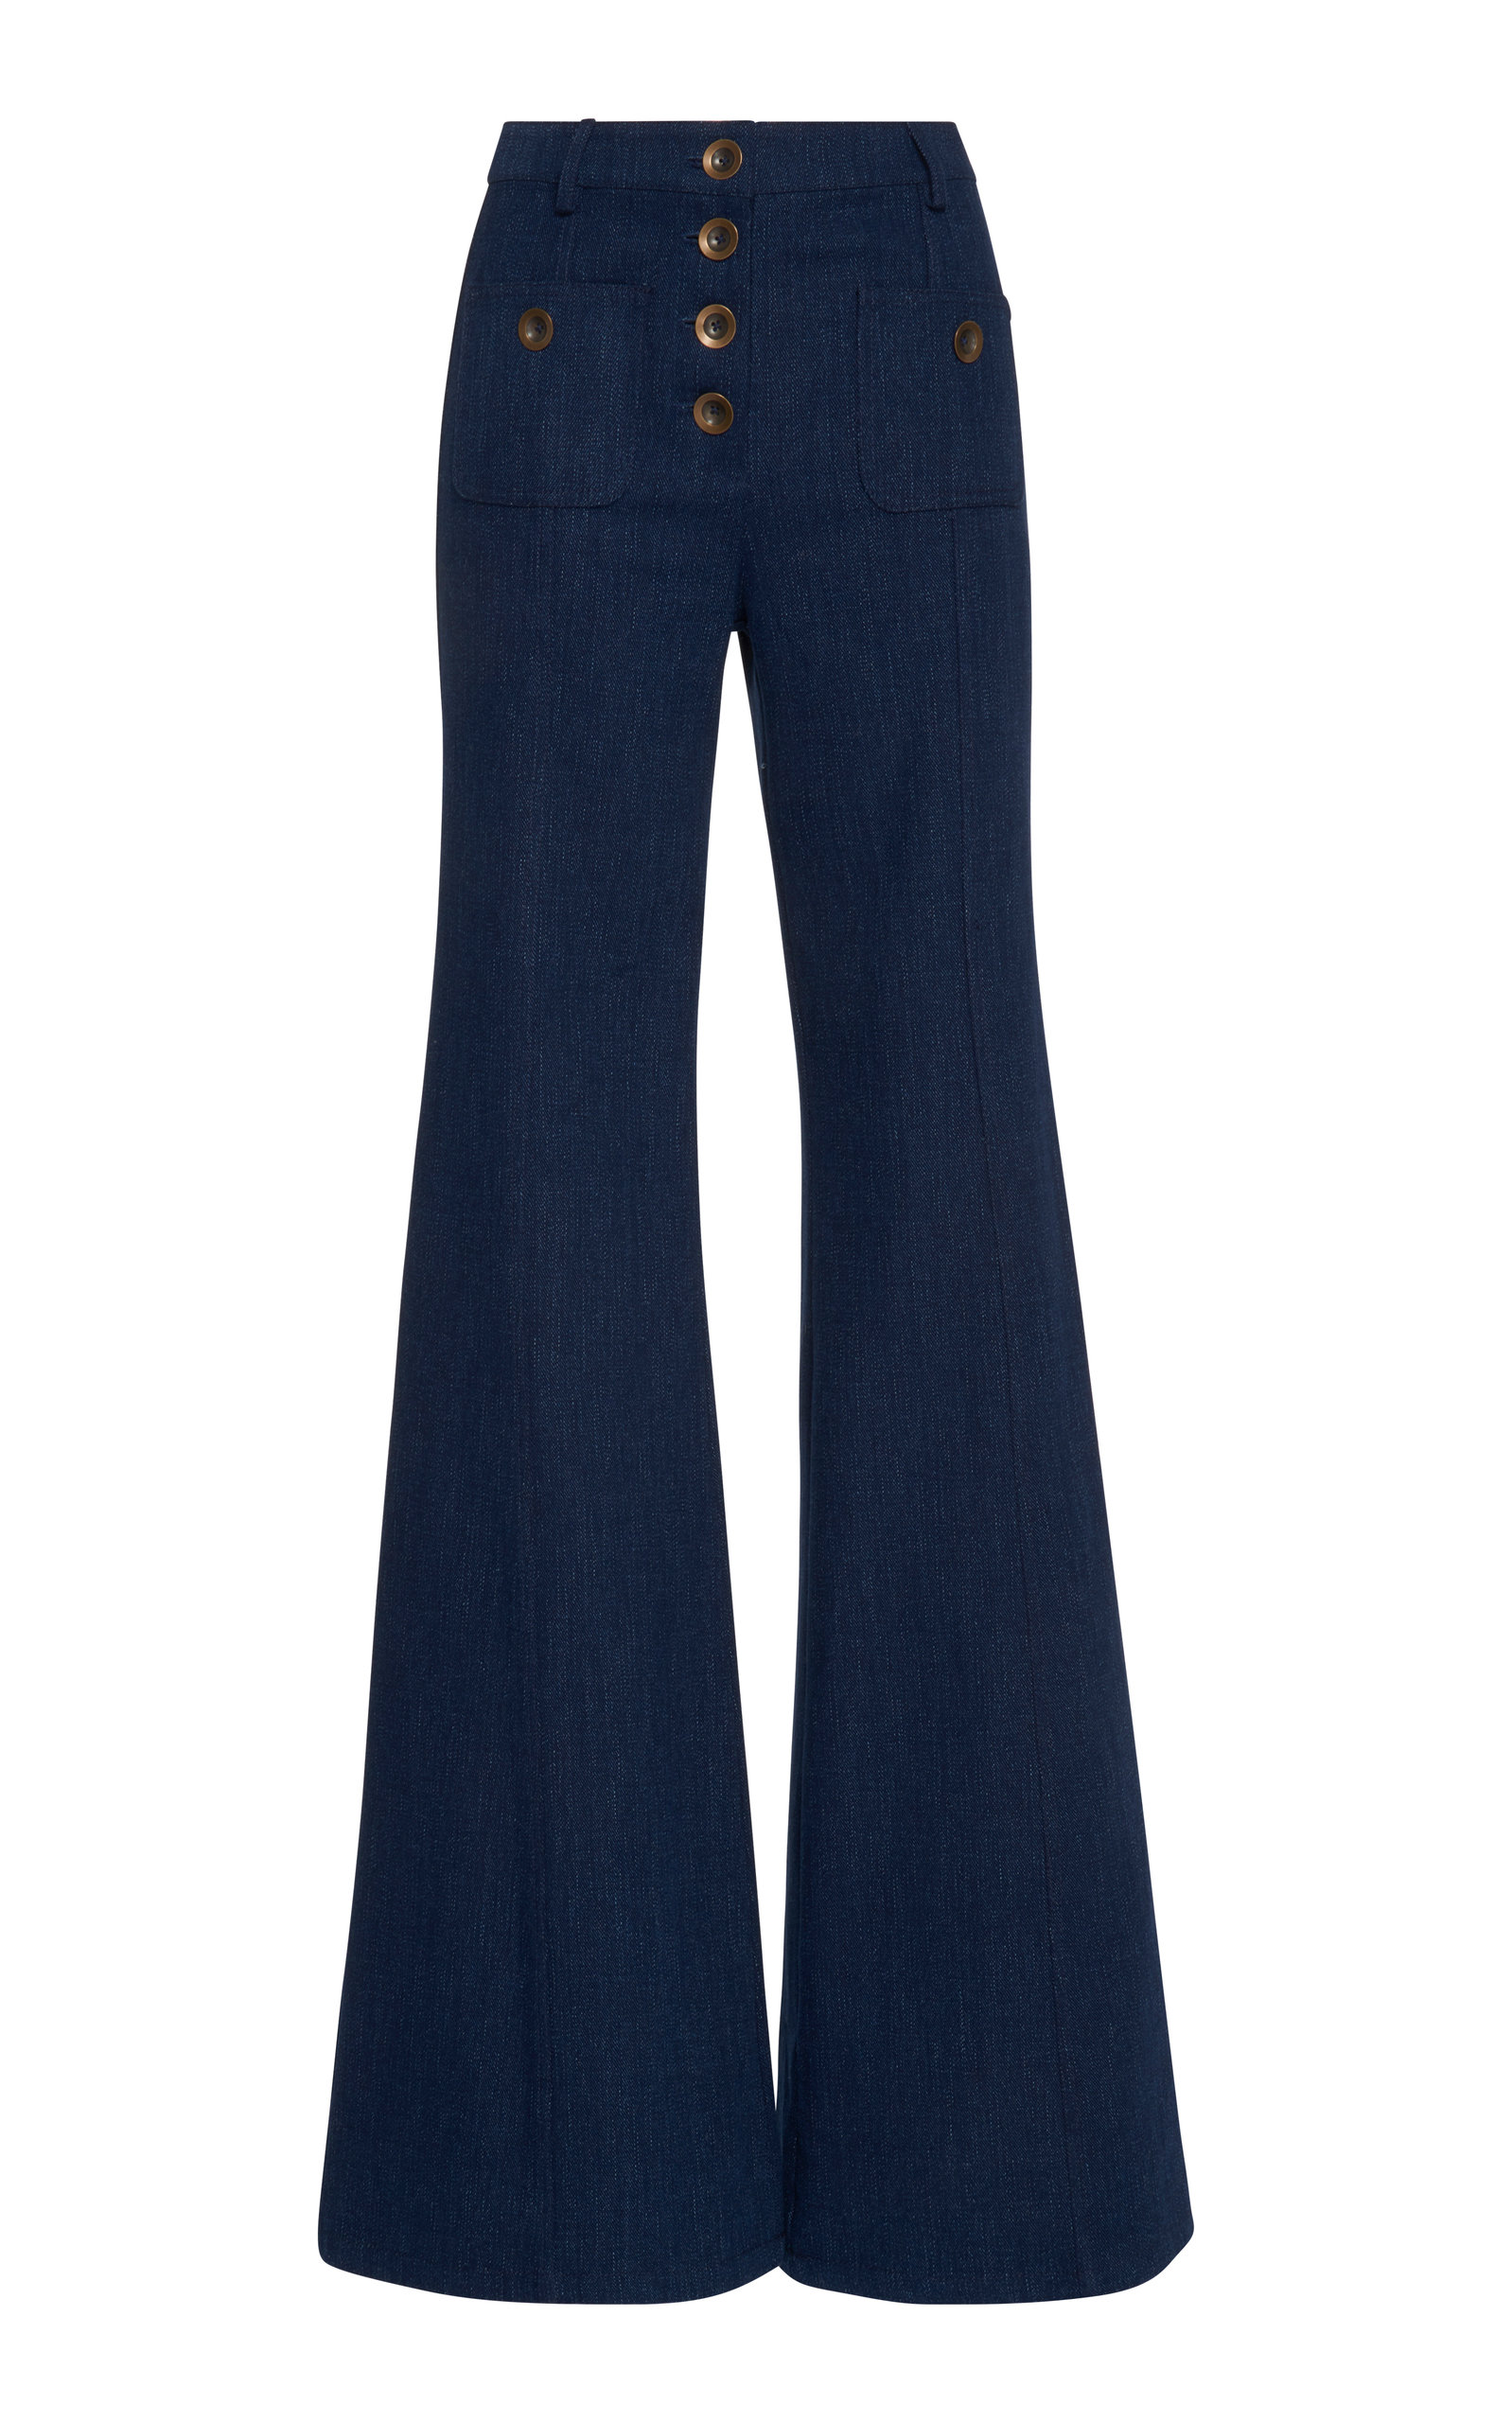 ALEXIS Ferris Wide Leg High-Waist Jeans in Denim